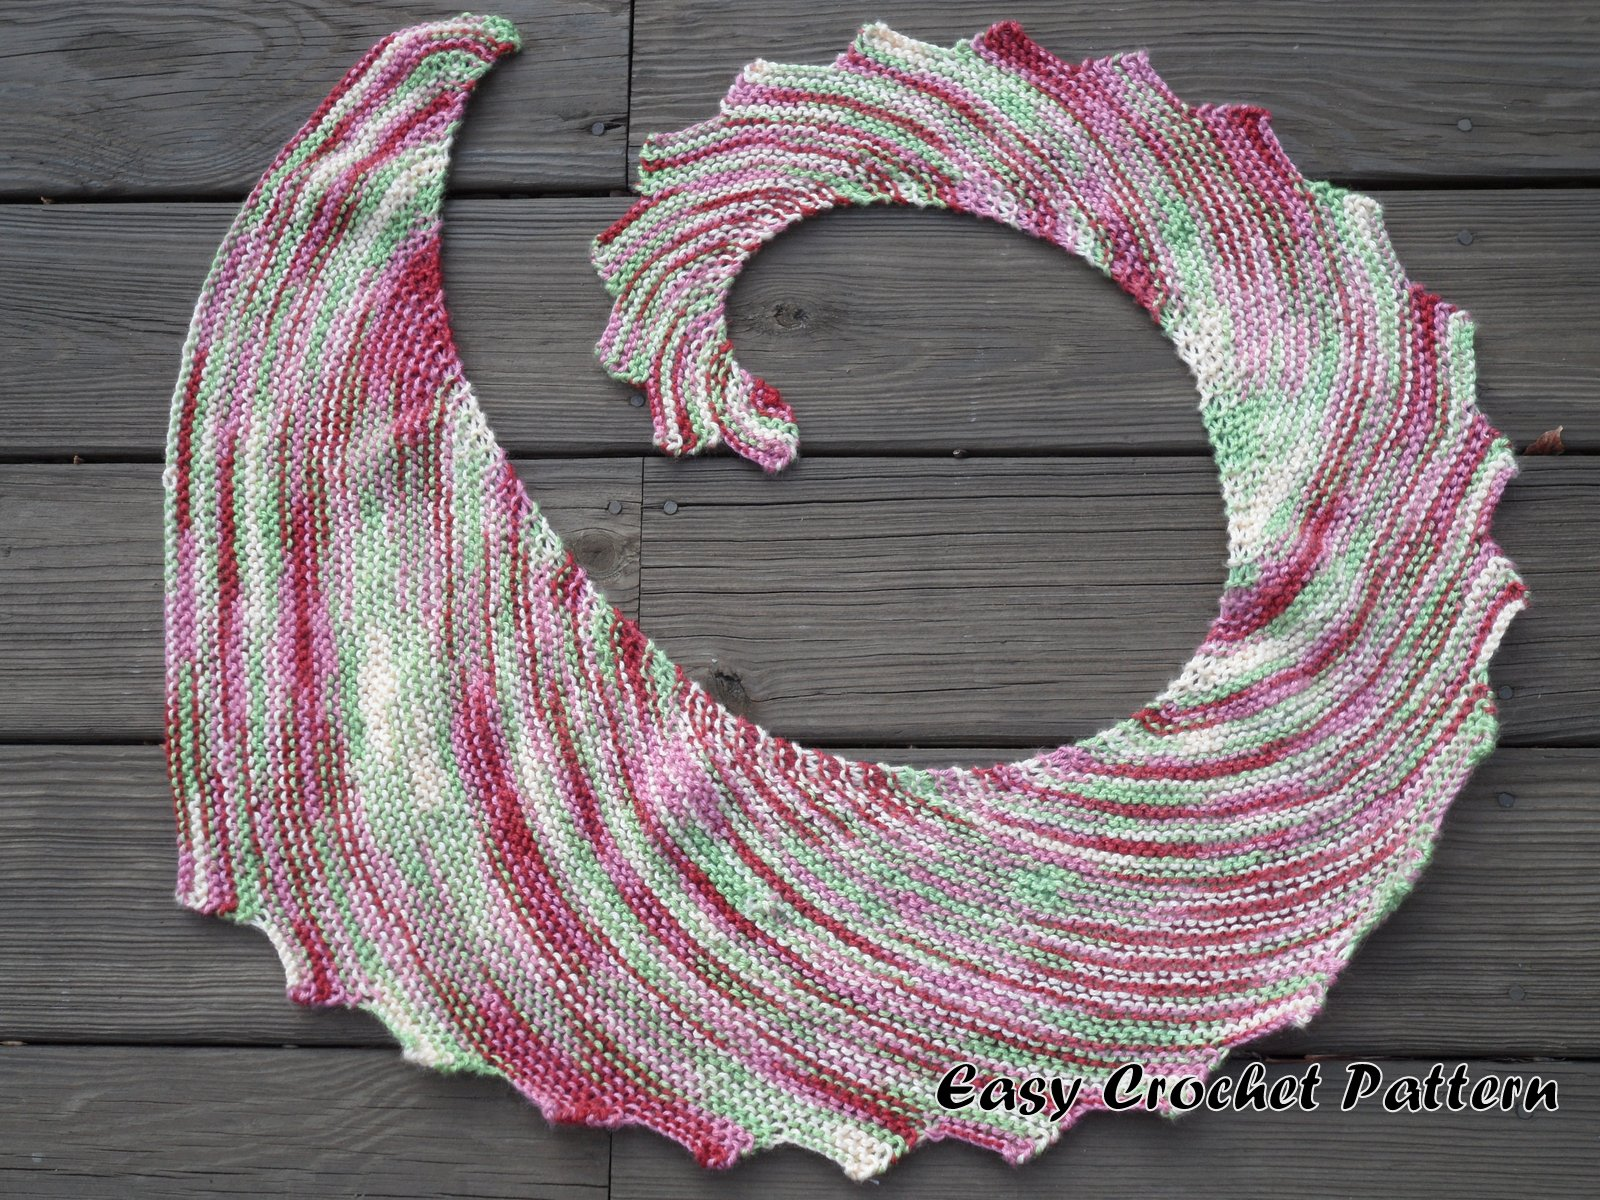 Easy Crochet Pattern: Another Dragon\'s Tail Scarf